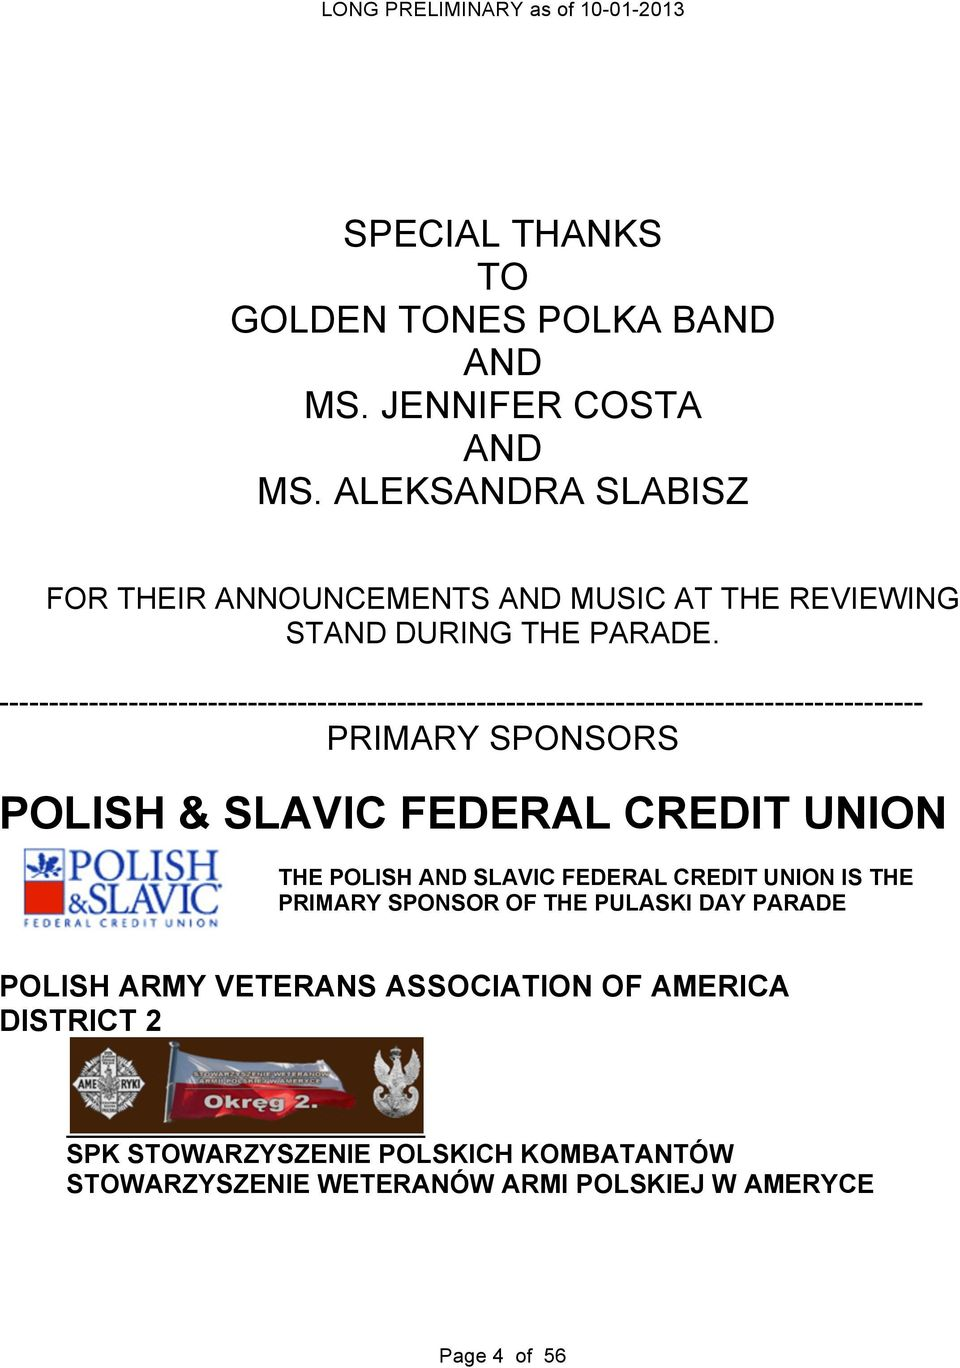 --------------------------------------------------------------------------------------------- PRIMARY SPONSORS POLISH & SLAVIC FEDERAL CREDIT UNION